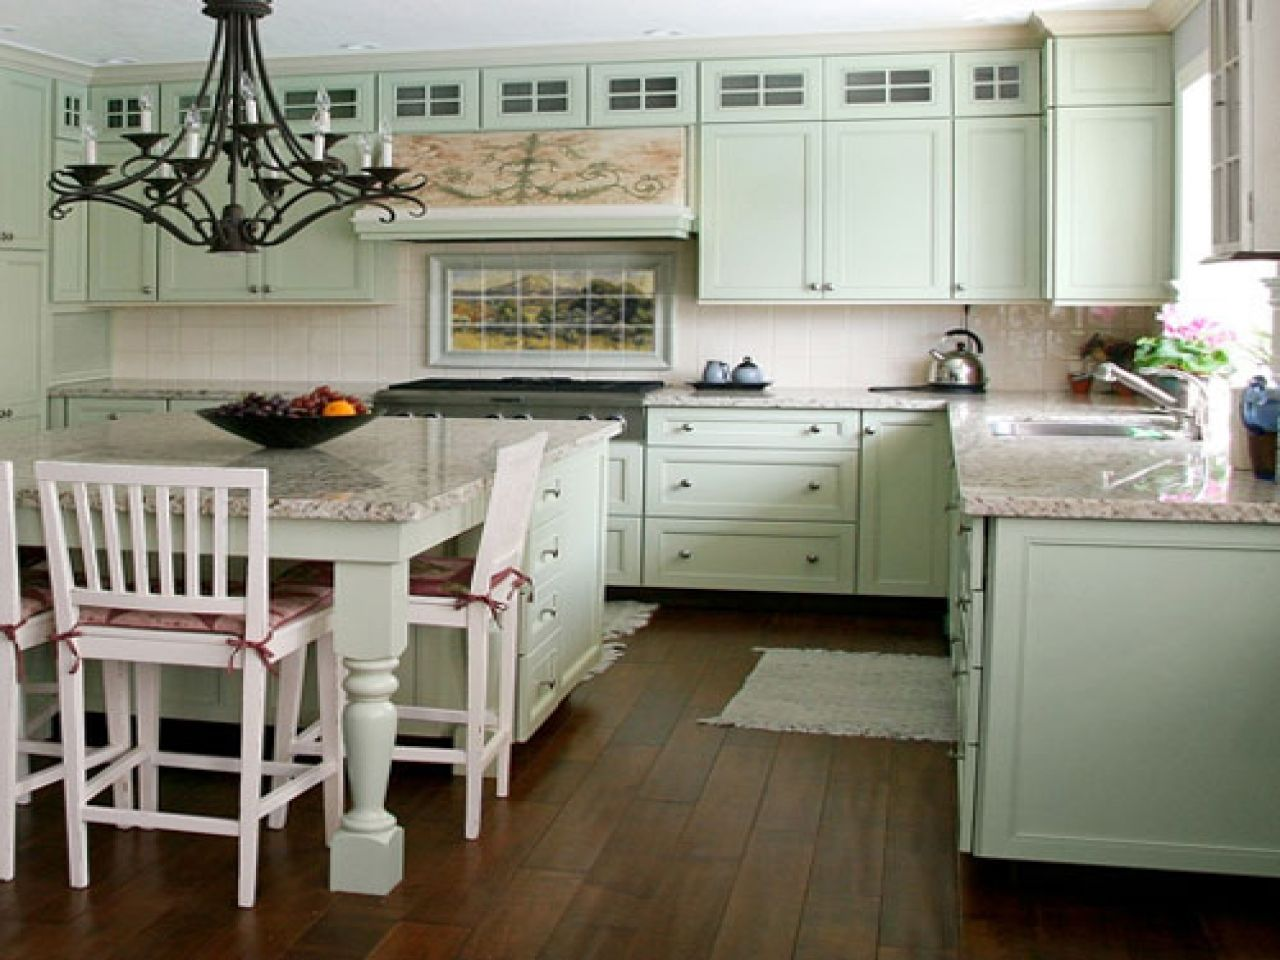 Country Cottage Kitchen Design Stunning Cottage Kitchen Backsplash Ideas French Country Cottage Inspiration Design